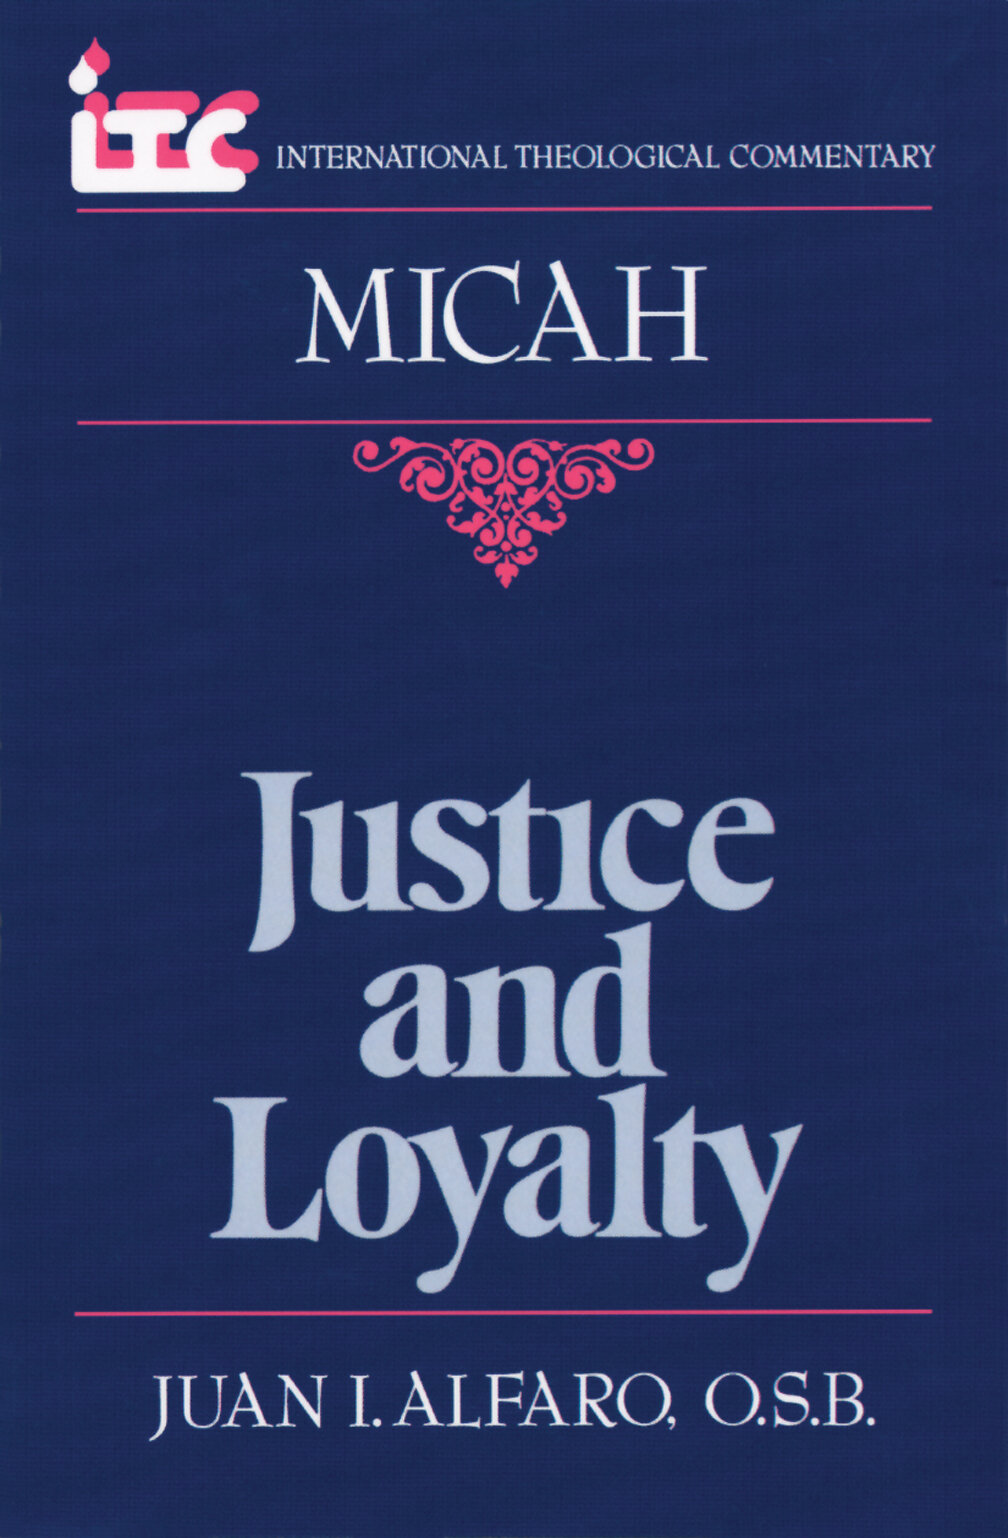 Justice and Loyalty: A Commentary on the Book of Micah (International Theological Commentary | ITC)